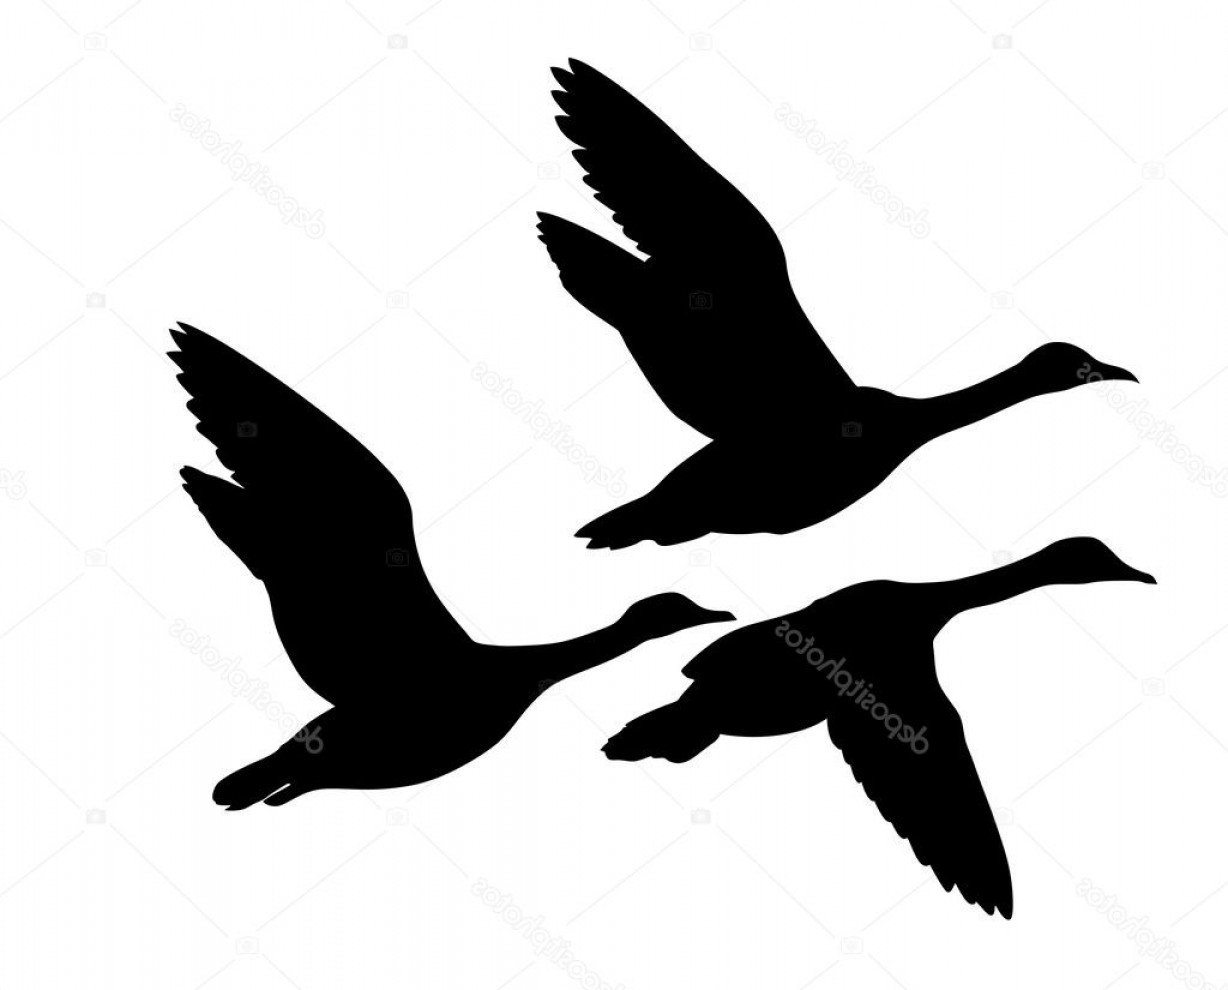 Flying Duck Outline Vector: Stock Illustration Vector Silhouette Flying Ducks On